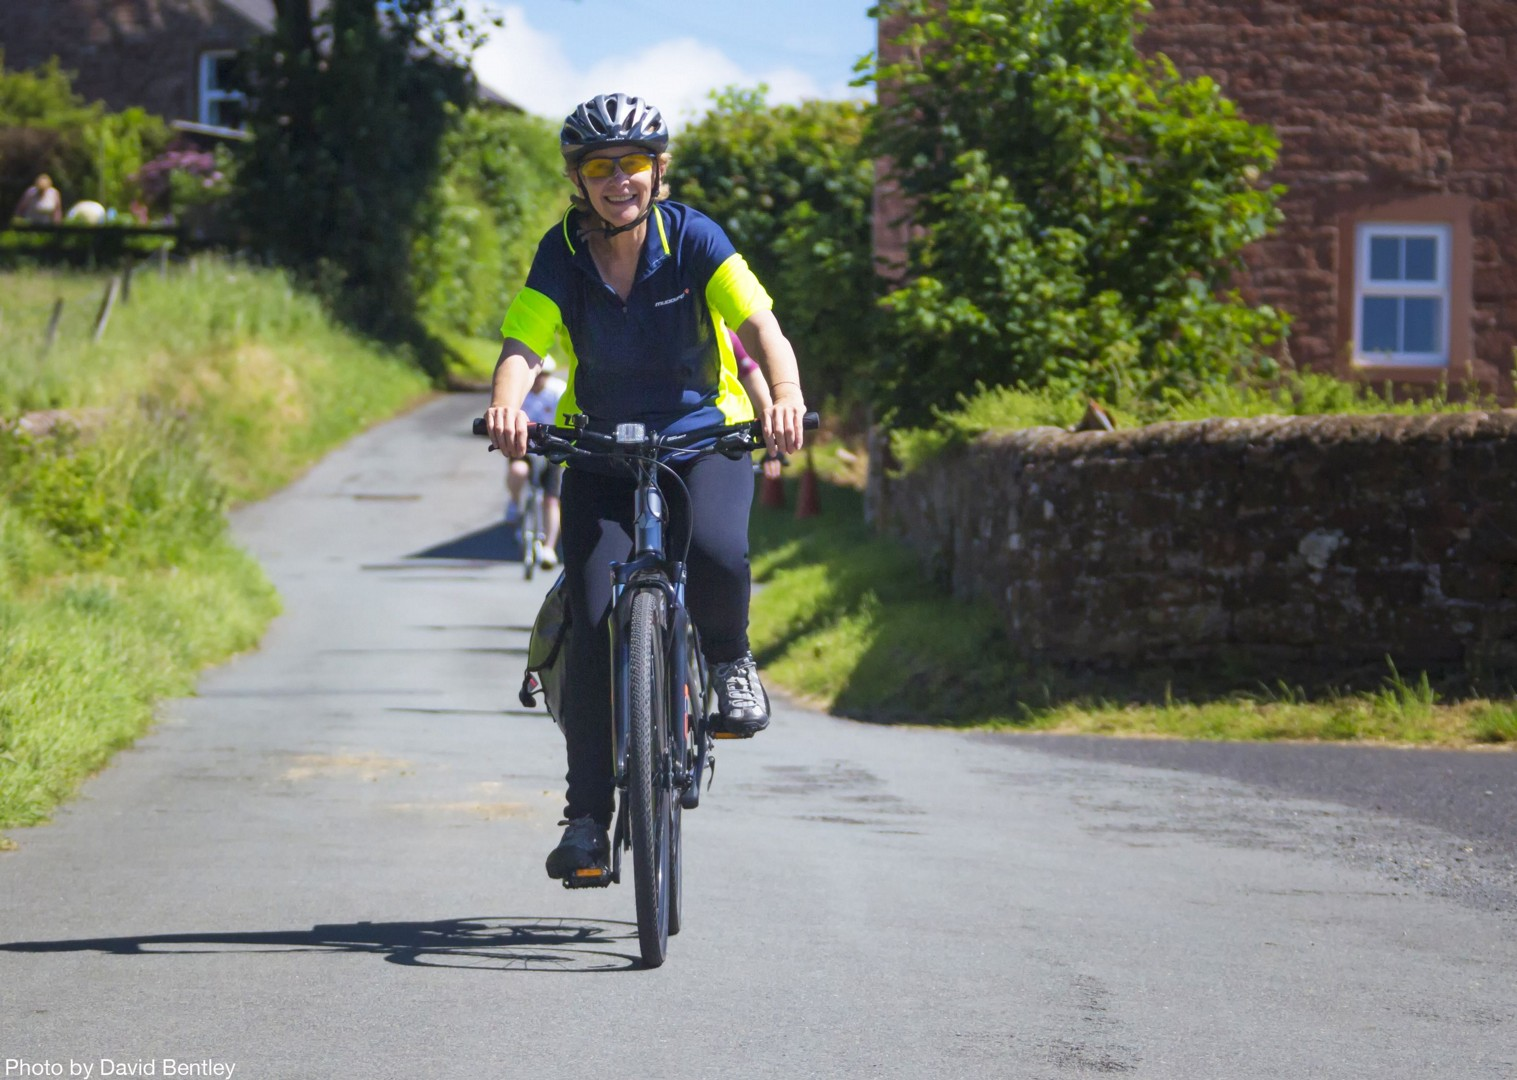 Self-Guided-Leisure-Cycling-Holiday-Hadrians-Cycleway-UK.jpg - UK - Hadrian's Cycleway - 2 Days Cycling - Self-Guided Leisure Cycling Holiday - Leisure Cycling